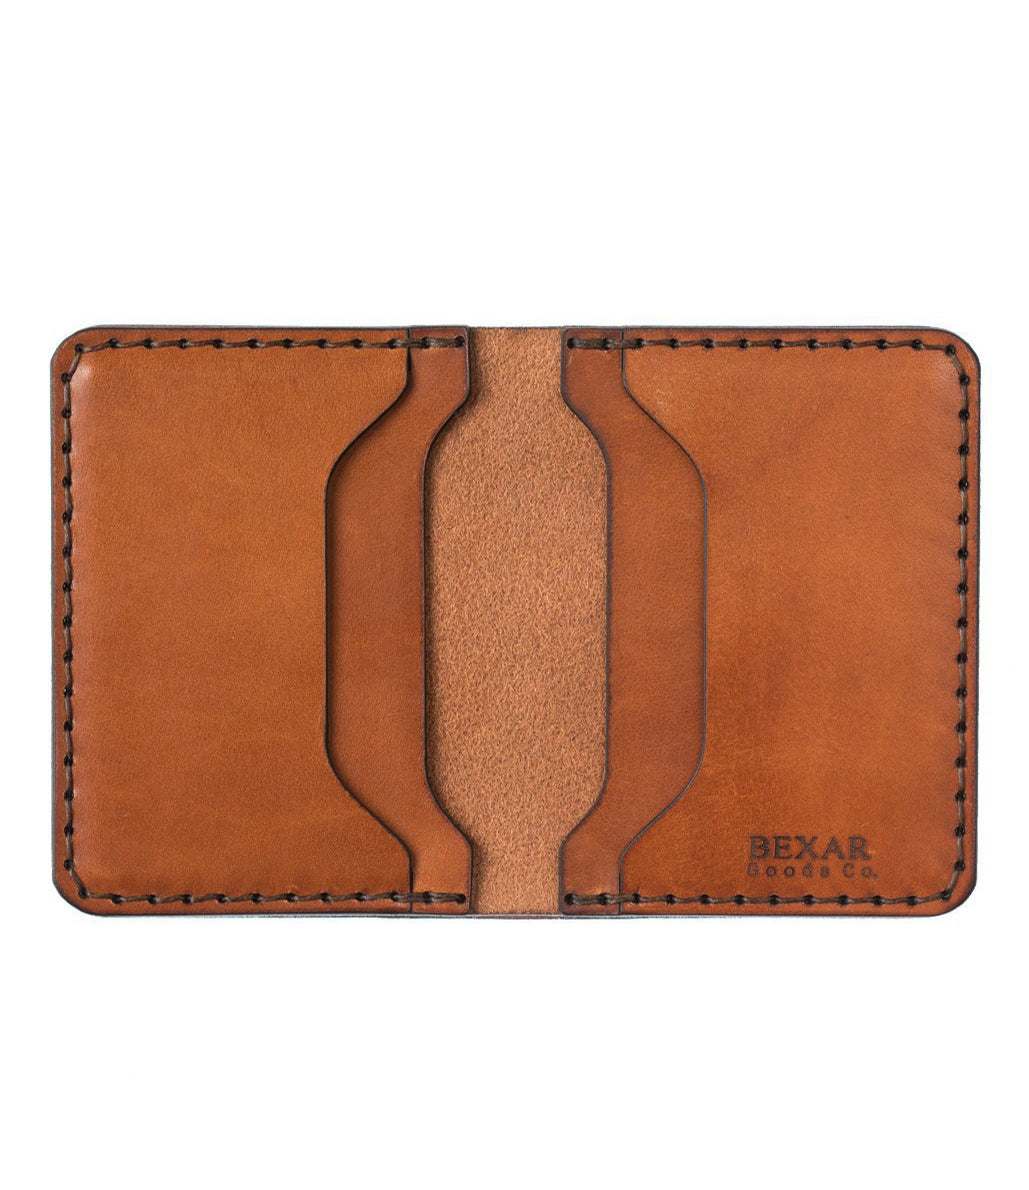 No. 14 Card Wallet